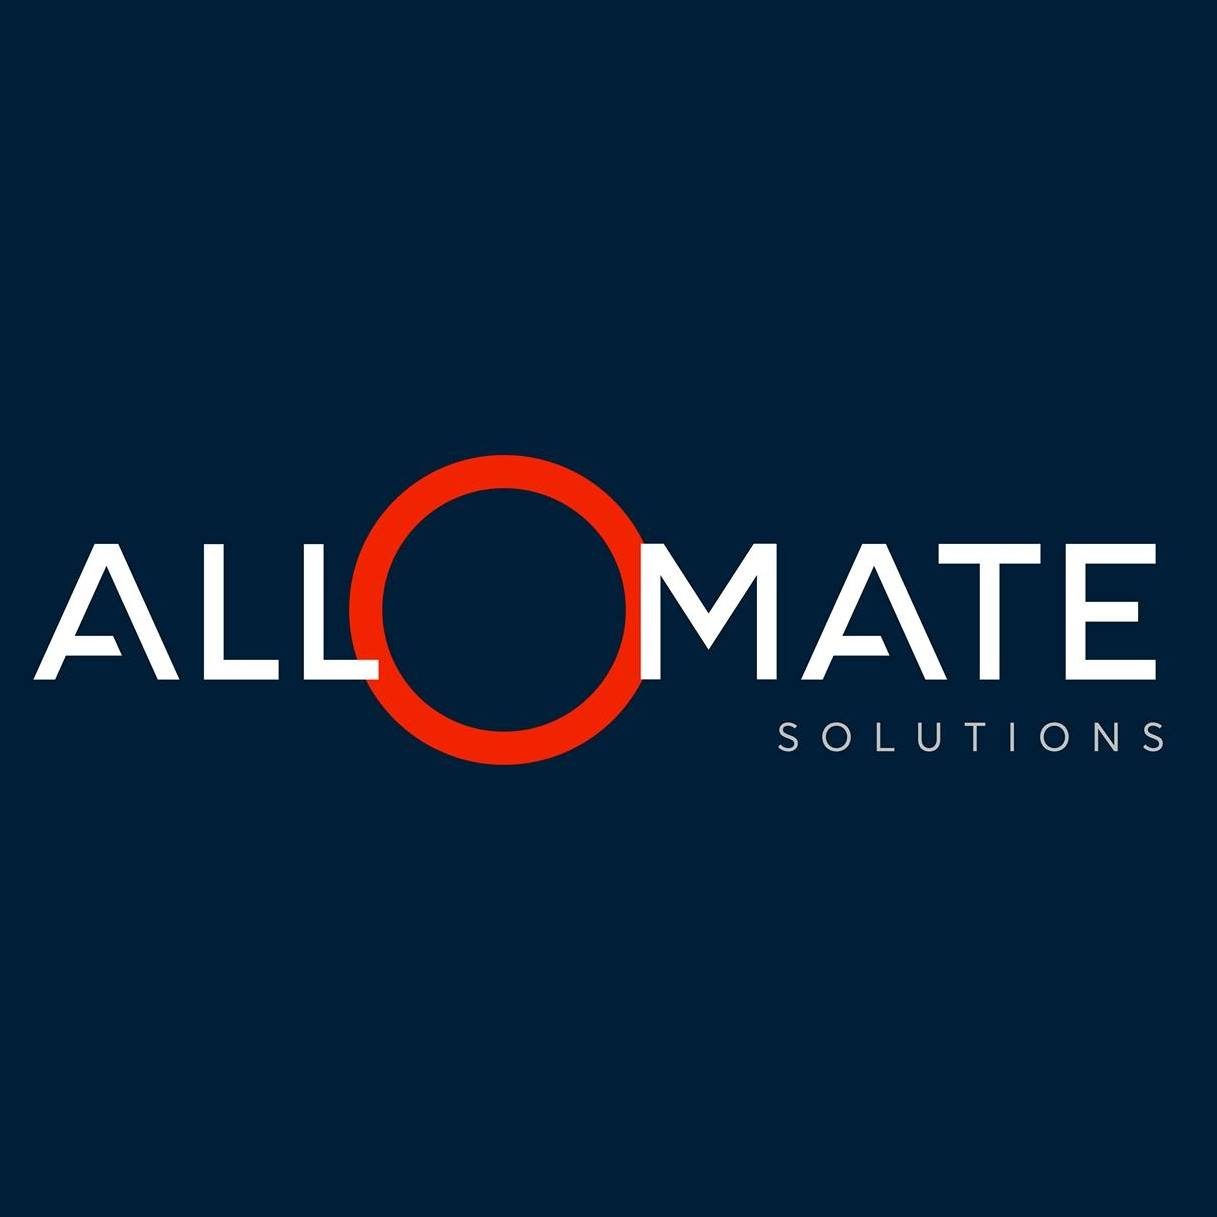 Allomate Solutions Client Reviews | Clutch co